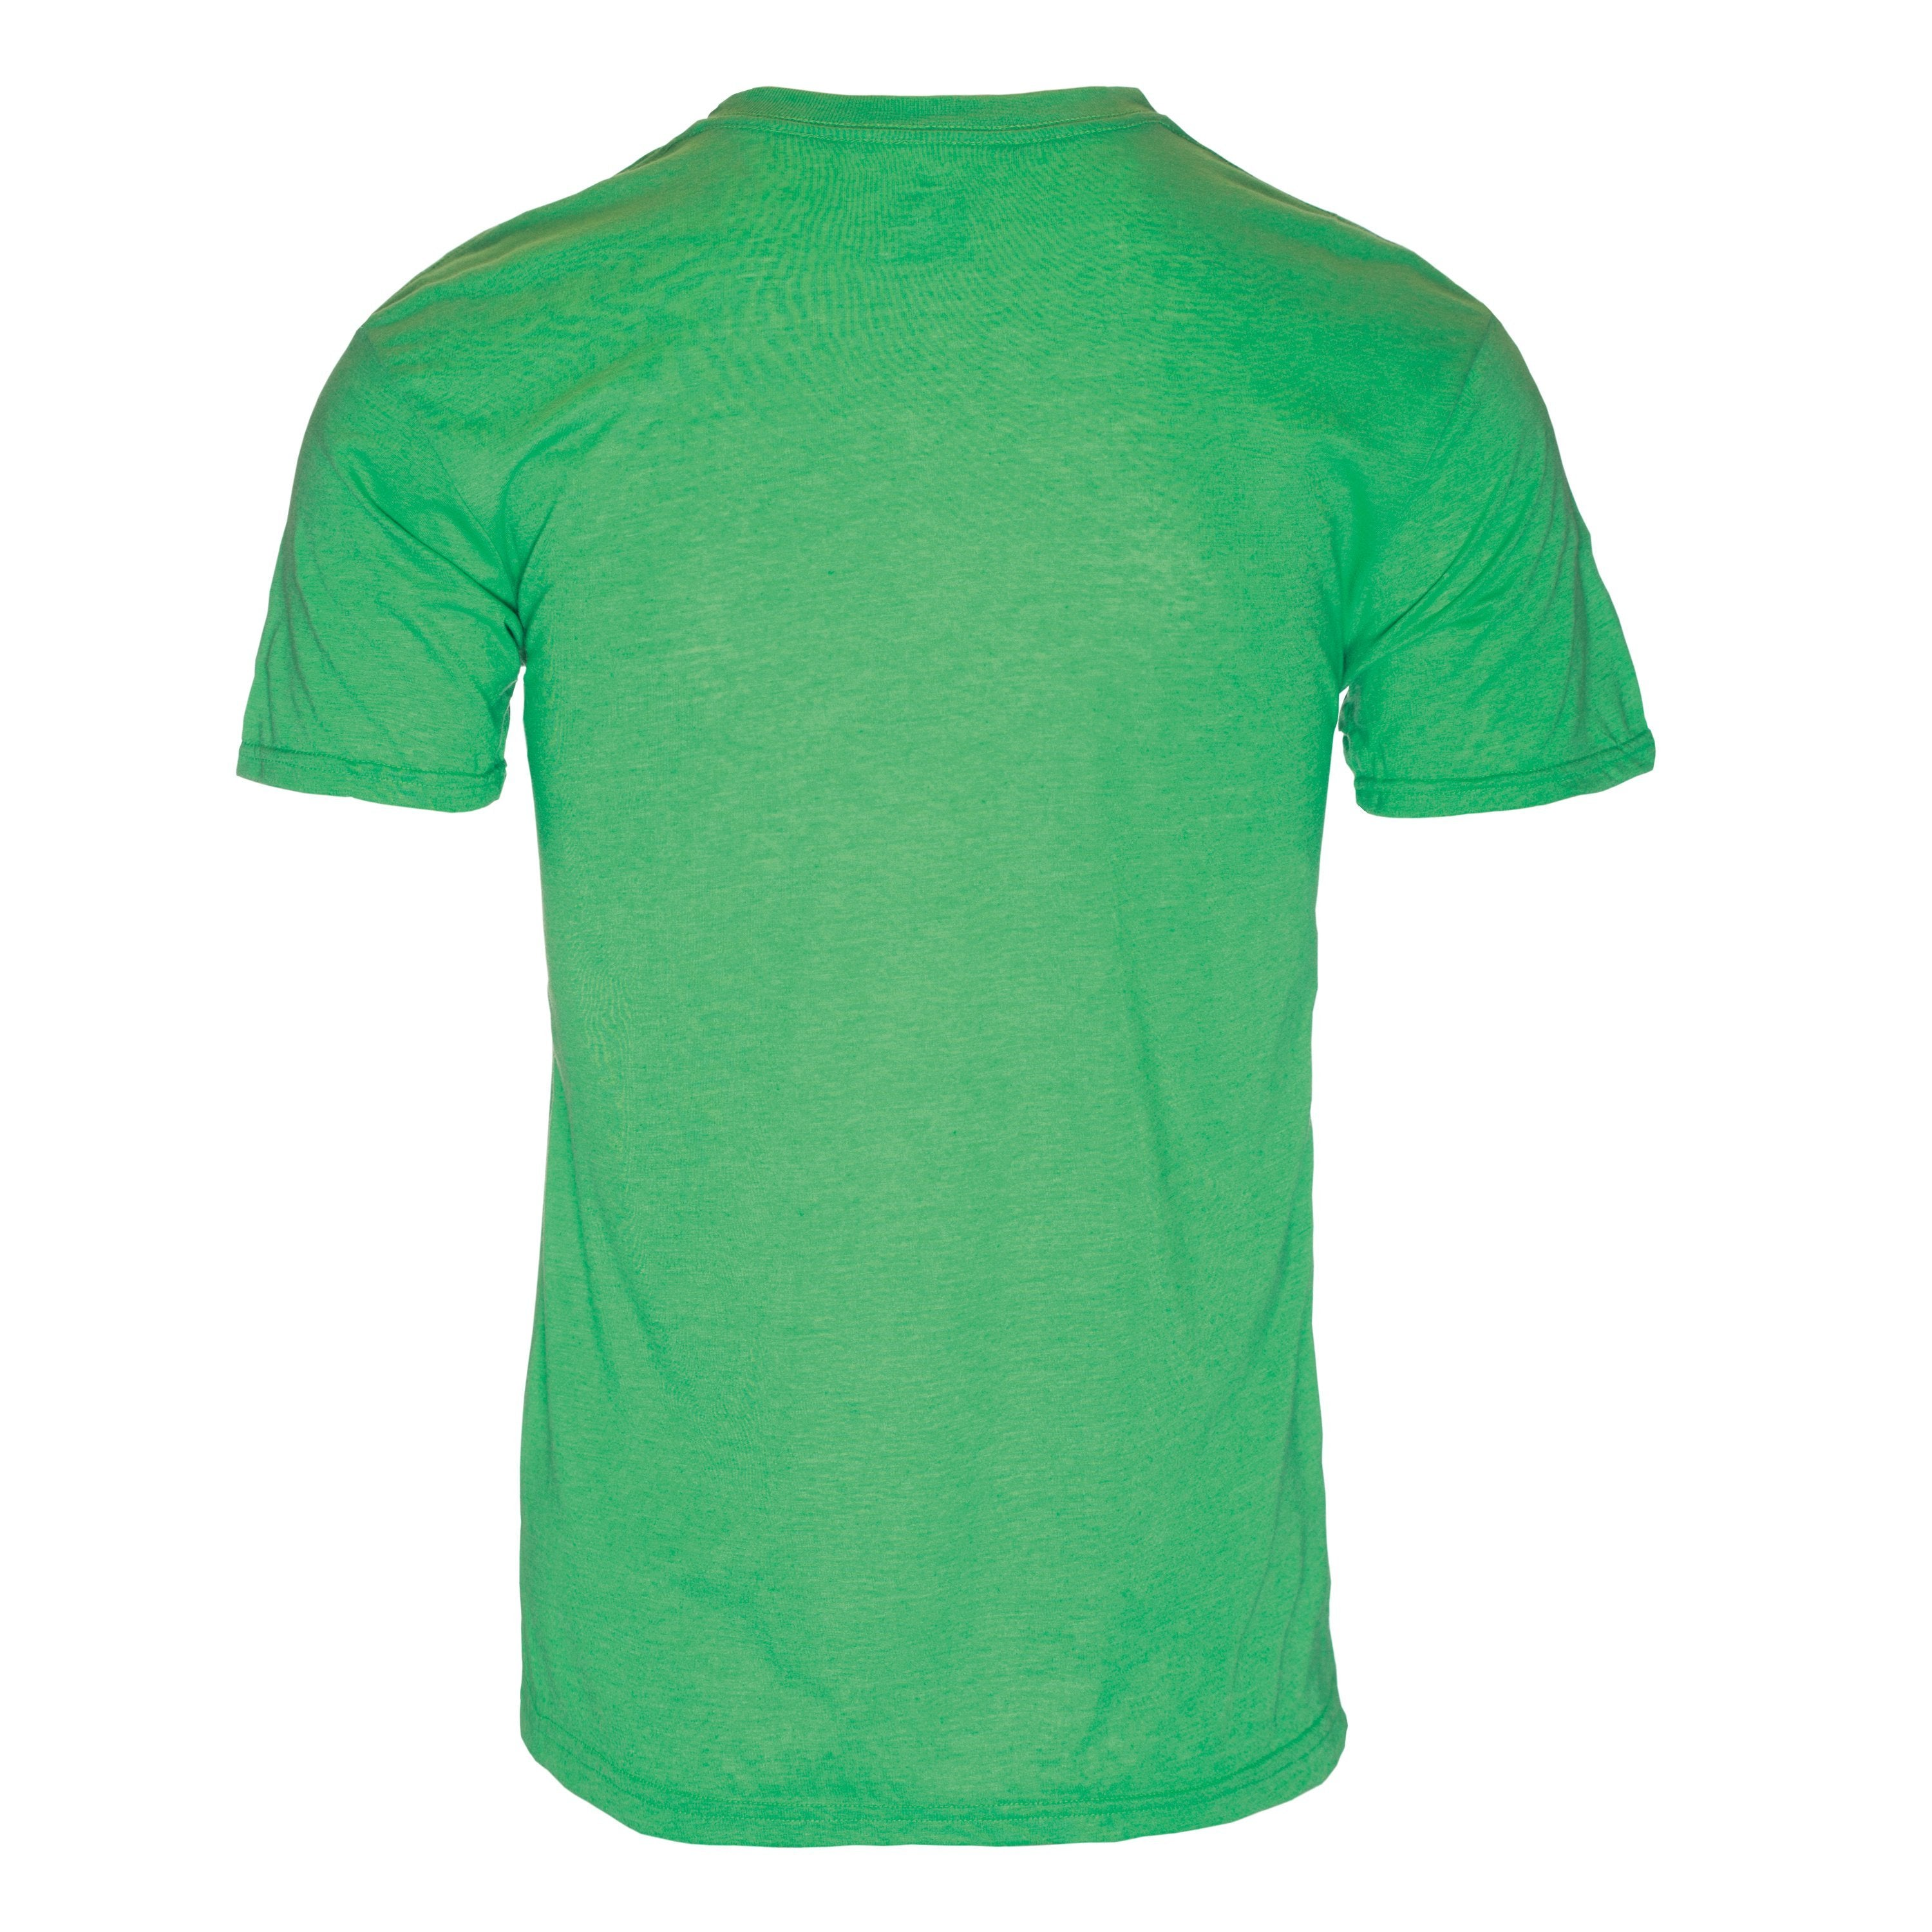 RM100GN Eco REPREVE® Recycled Triblend Crew T-Shirt - Green